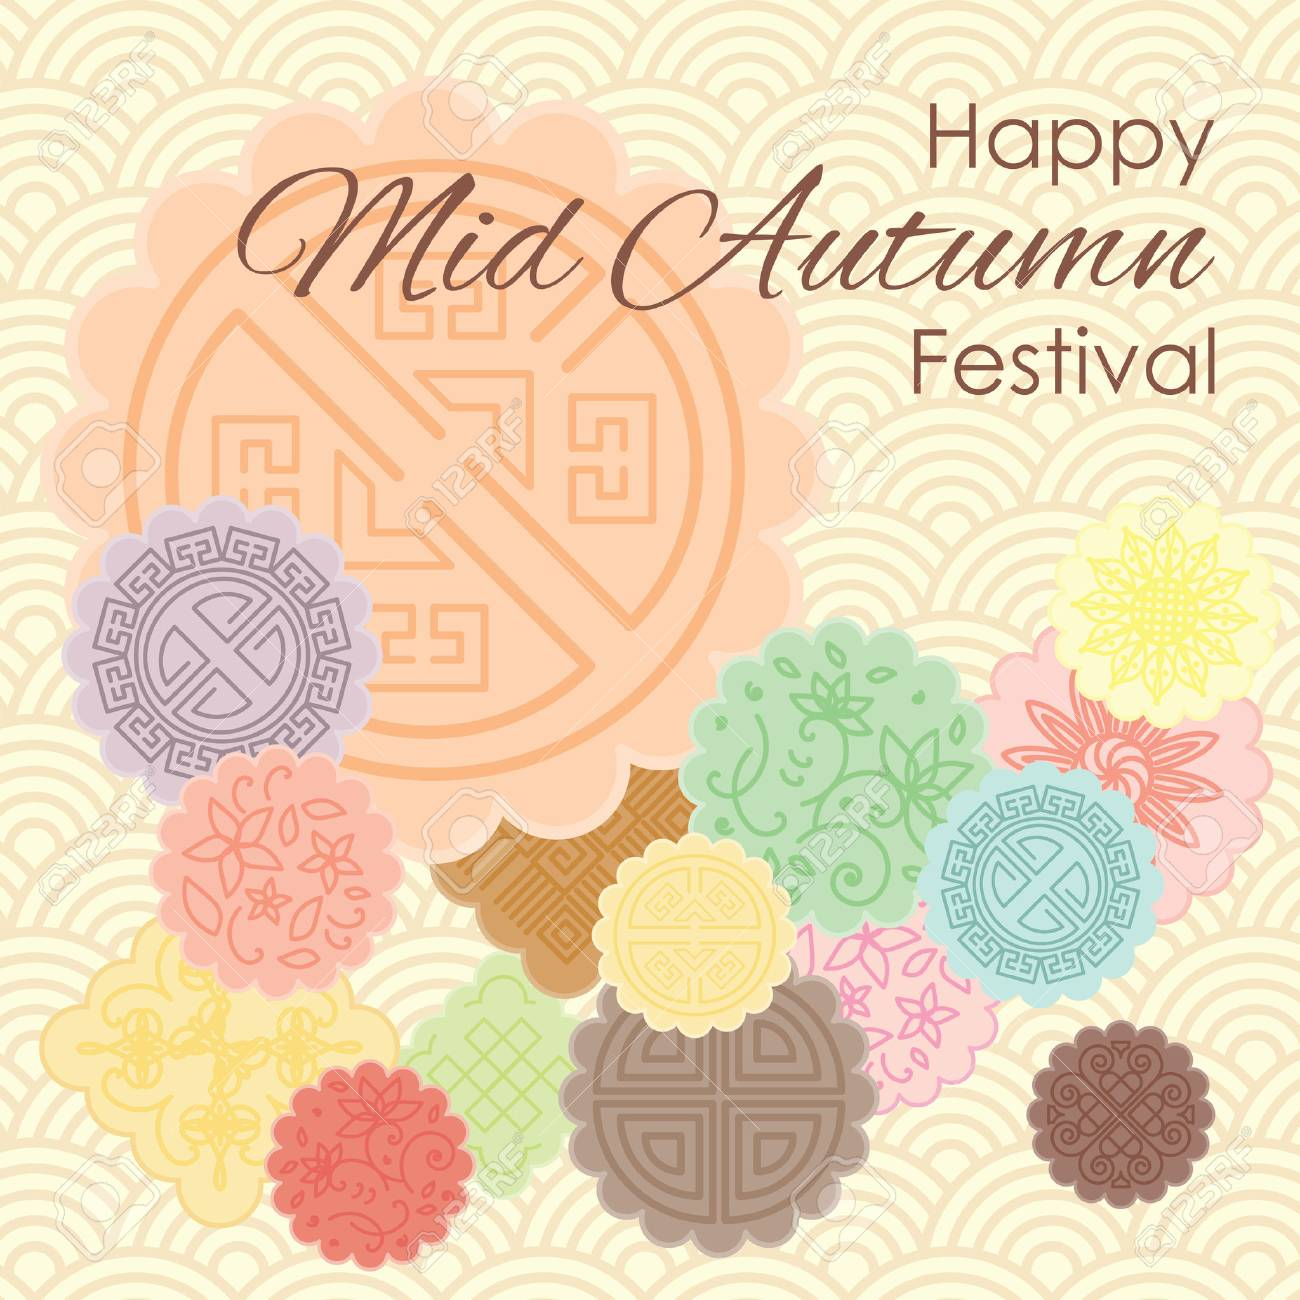 Vector illustration of greeting card for Mid Autumn Festival with traditional mooncakes and pastel ornamental background. - 85187600